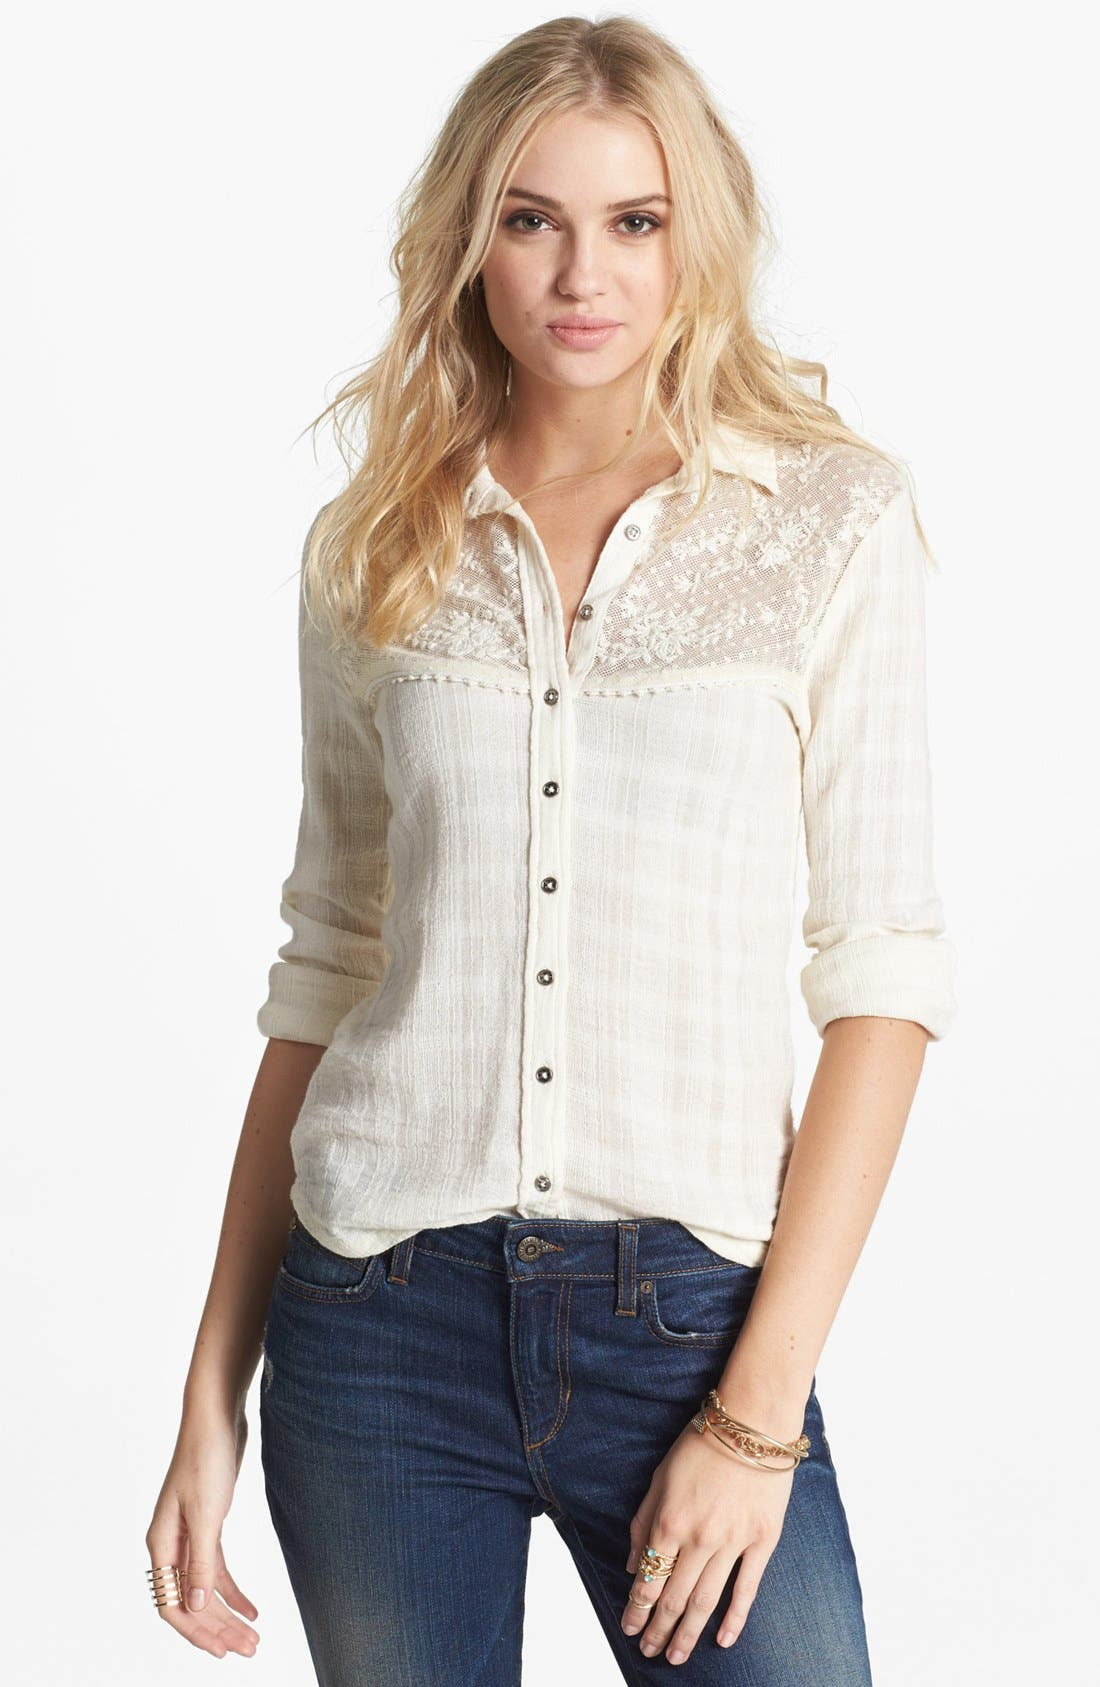 Alternate Image 1 Selected - Free People 'Saddle Up' Lace Yoke Shirt